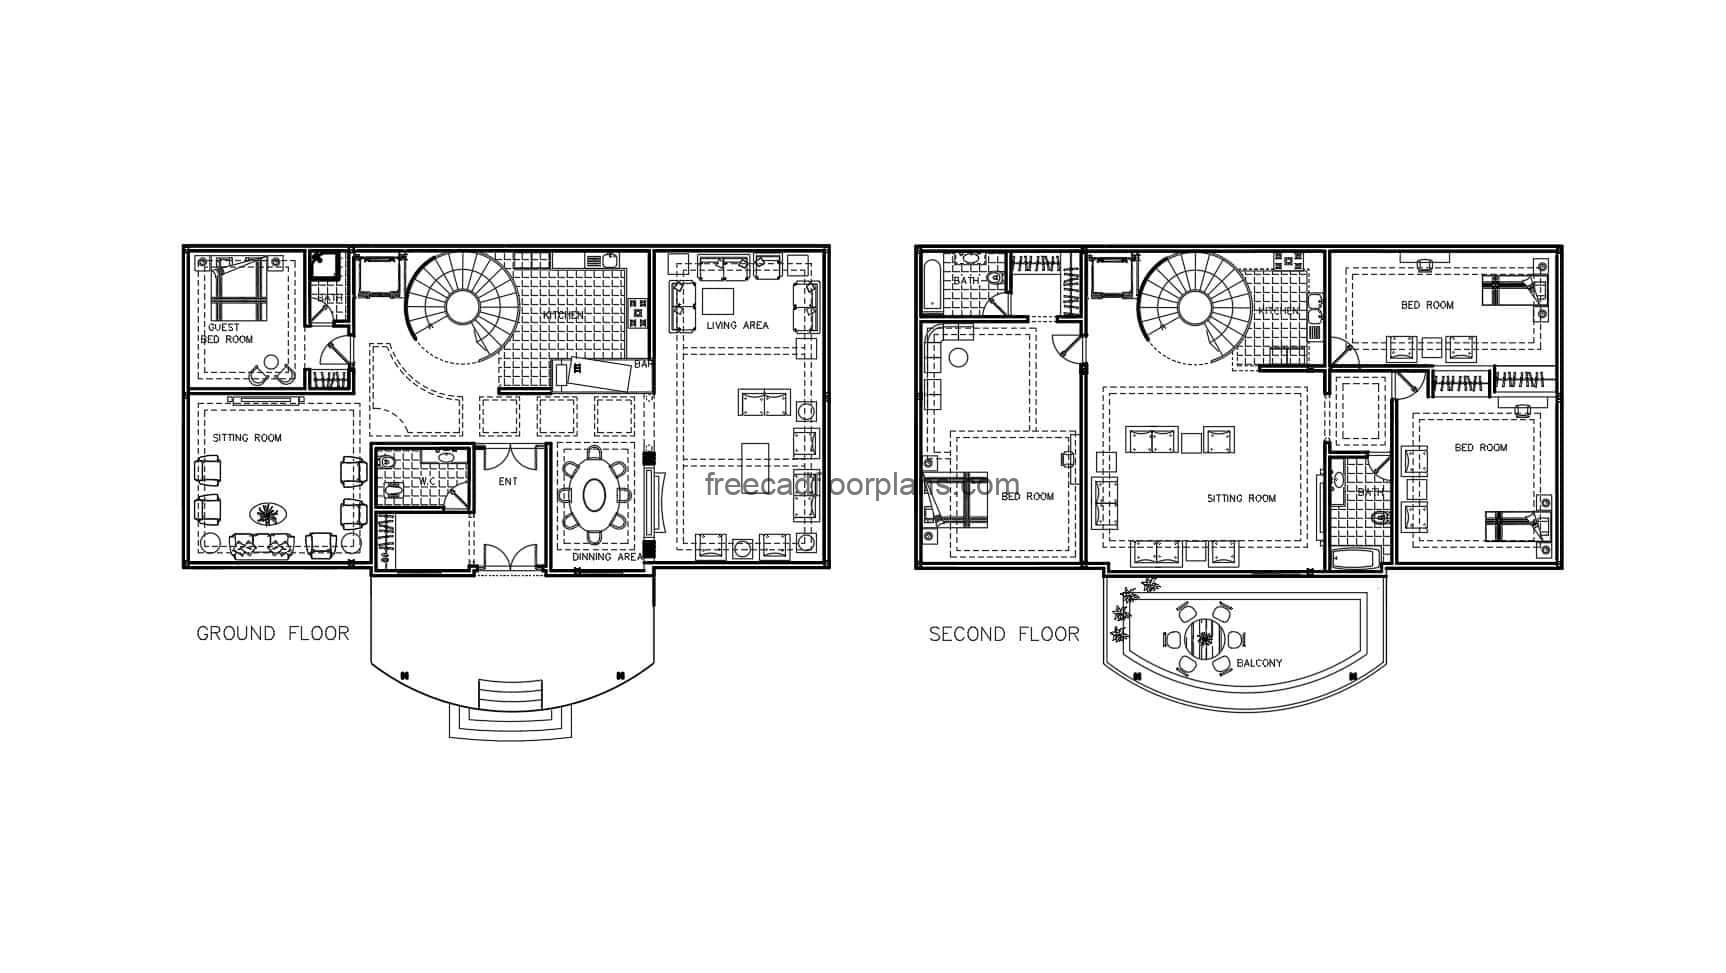 Complete architectural draft in Autocad DWG format of a two-level country house with a curved staircase, plans for free download